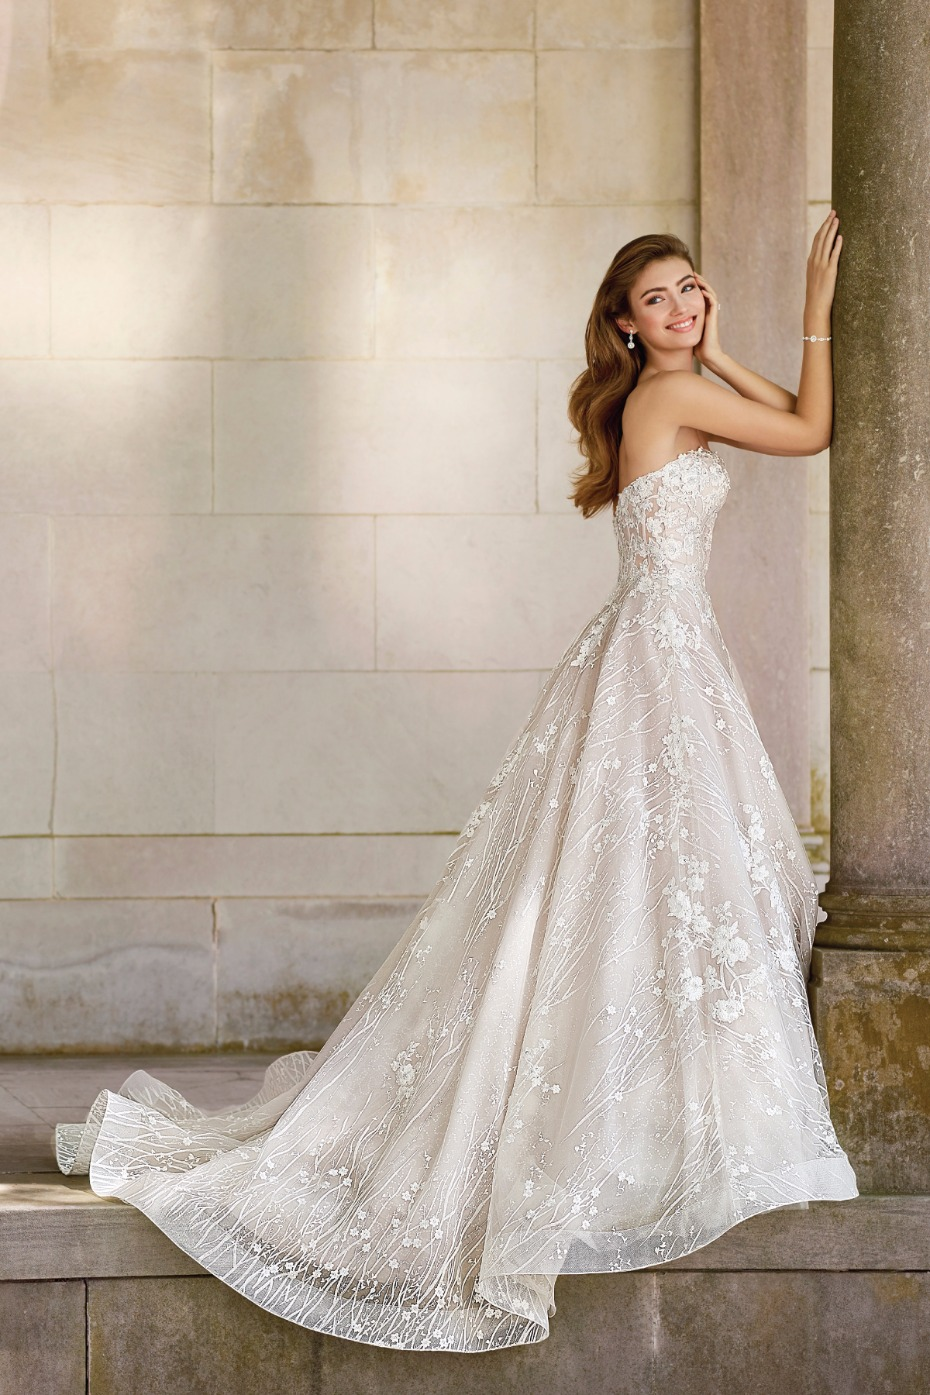 Look like a queen is a gorgeous gown from Martin Thornburg